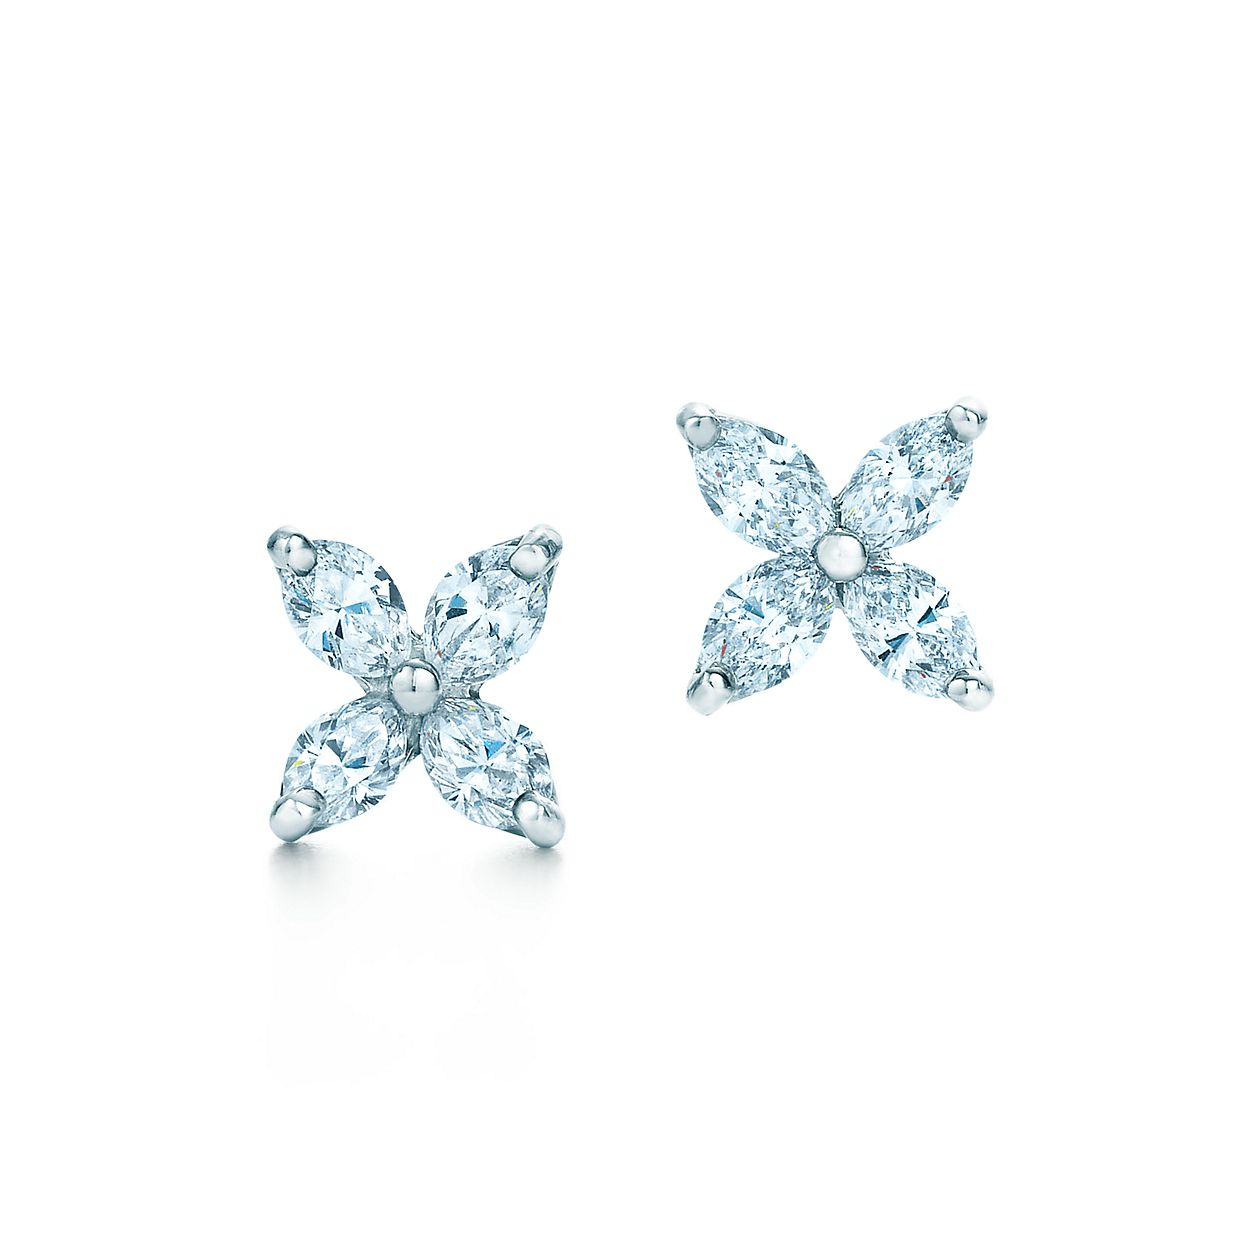 earrings with mini constrain de jewellery jewelry tiffany in platinum ed id wid fmt diamonds fleur fit lis hei